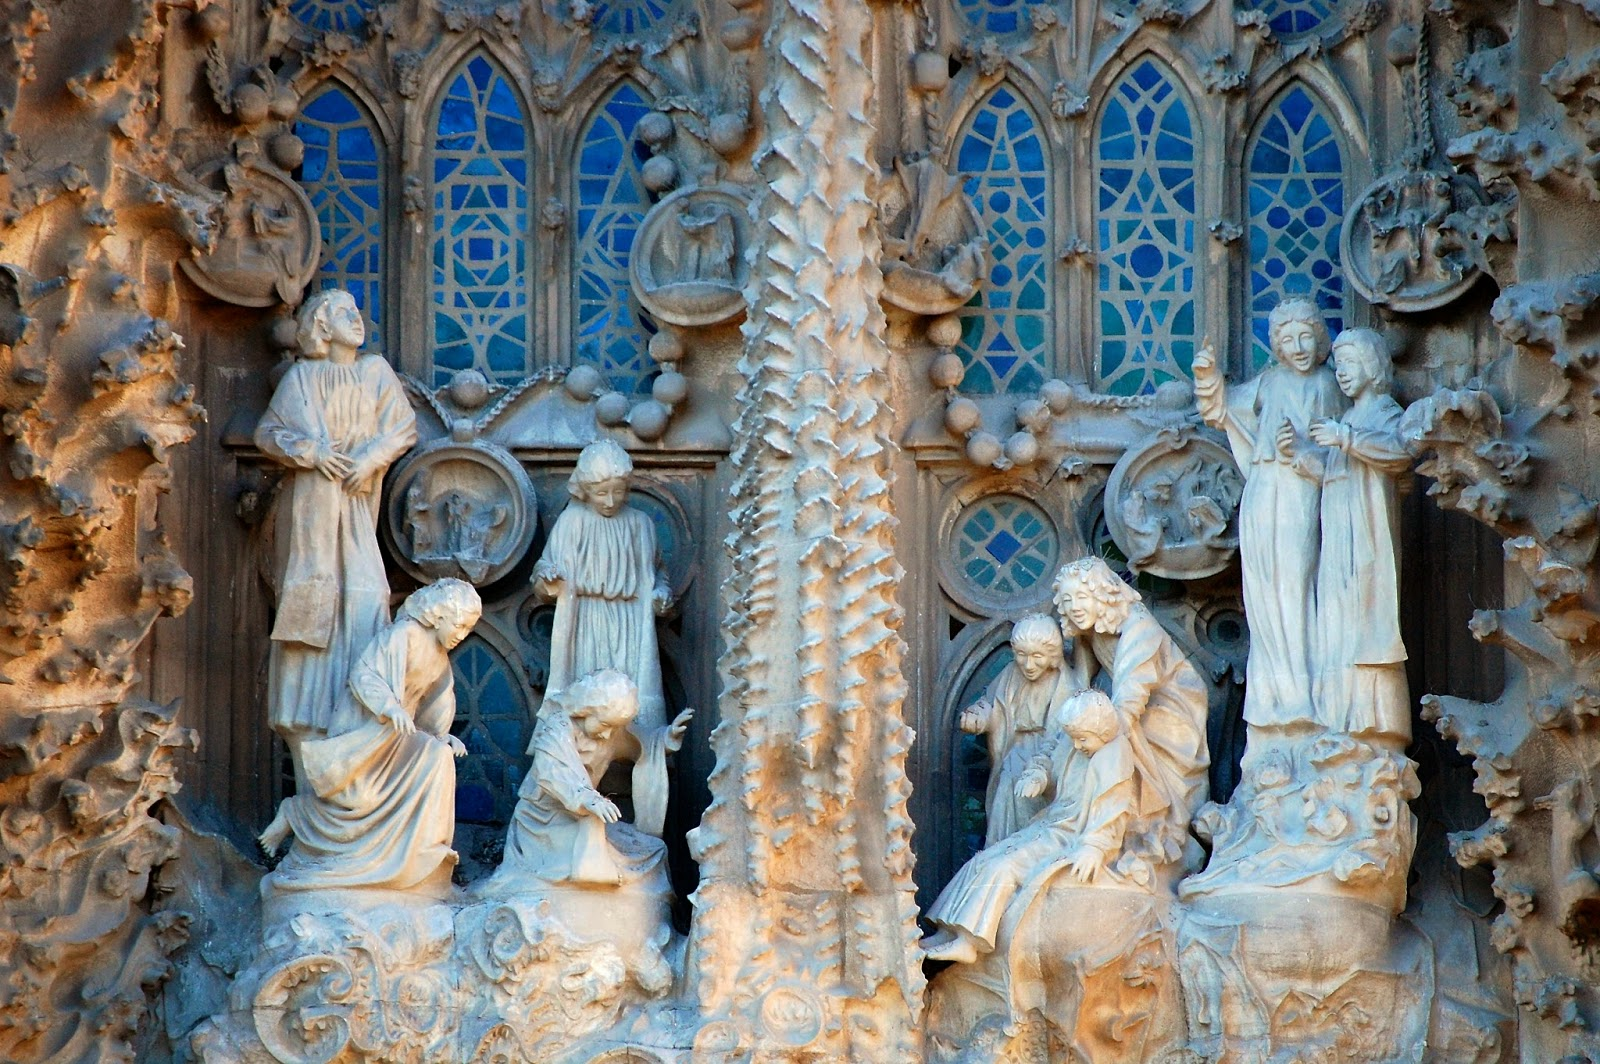 Heavenly choir sings angelic hymn on Nativity Facade, Sagrada Família